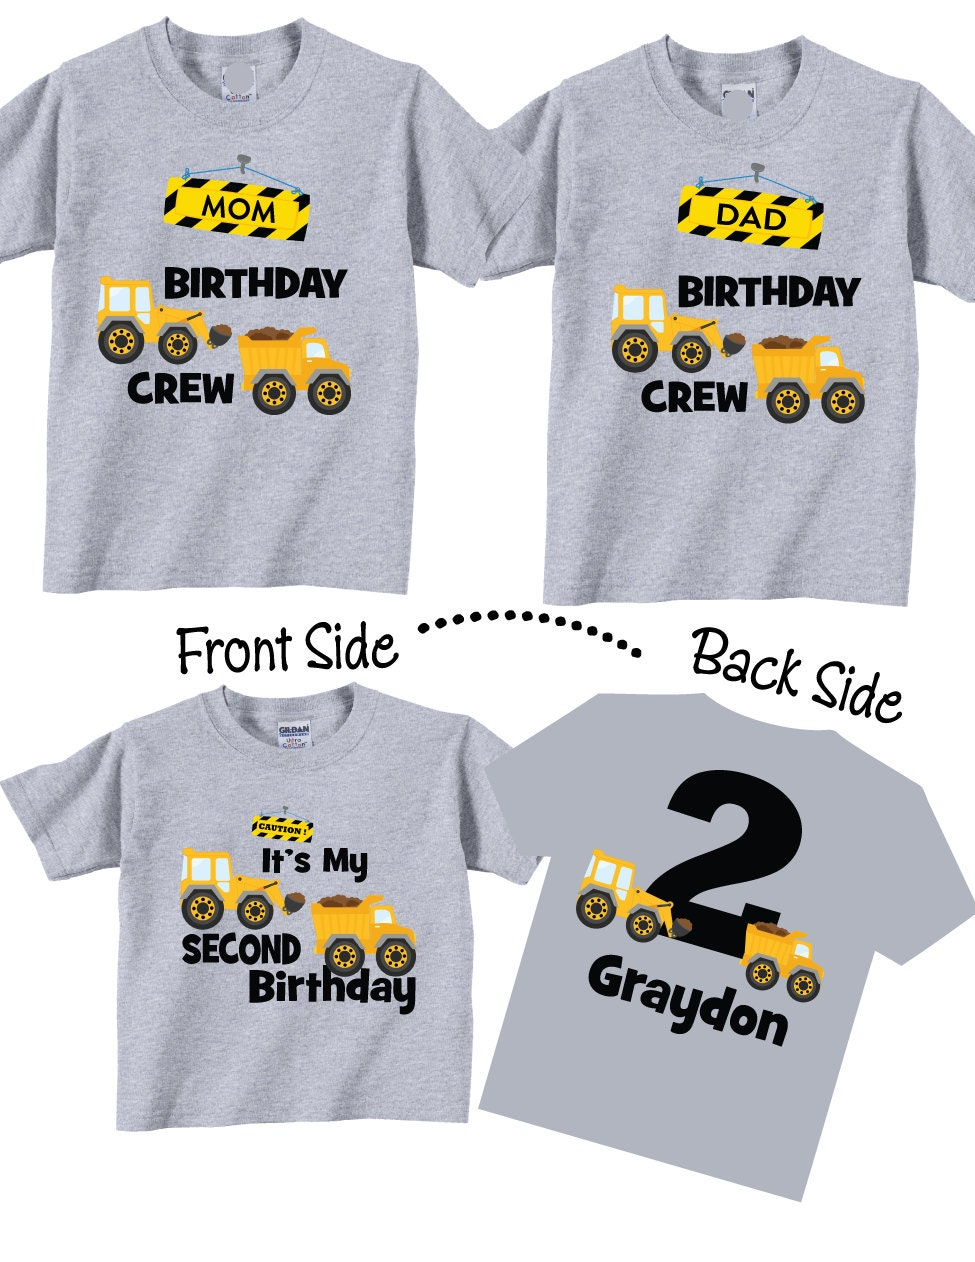 e5643d99 Birthday Shirts For Mom And Dad